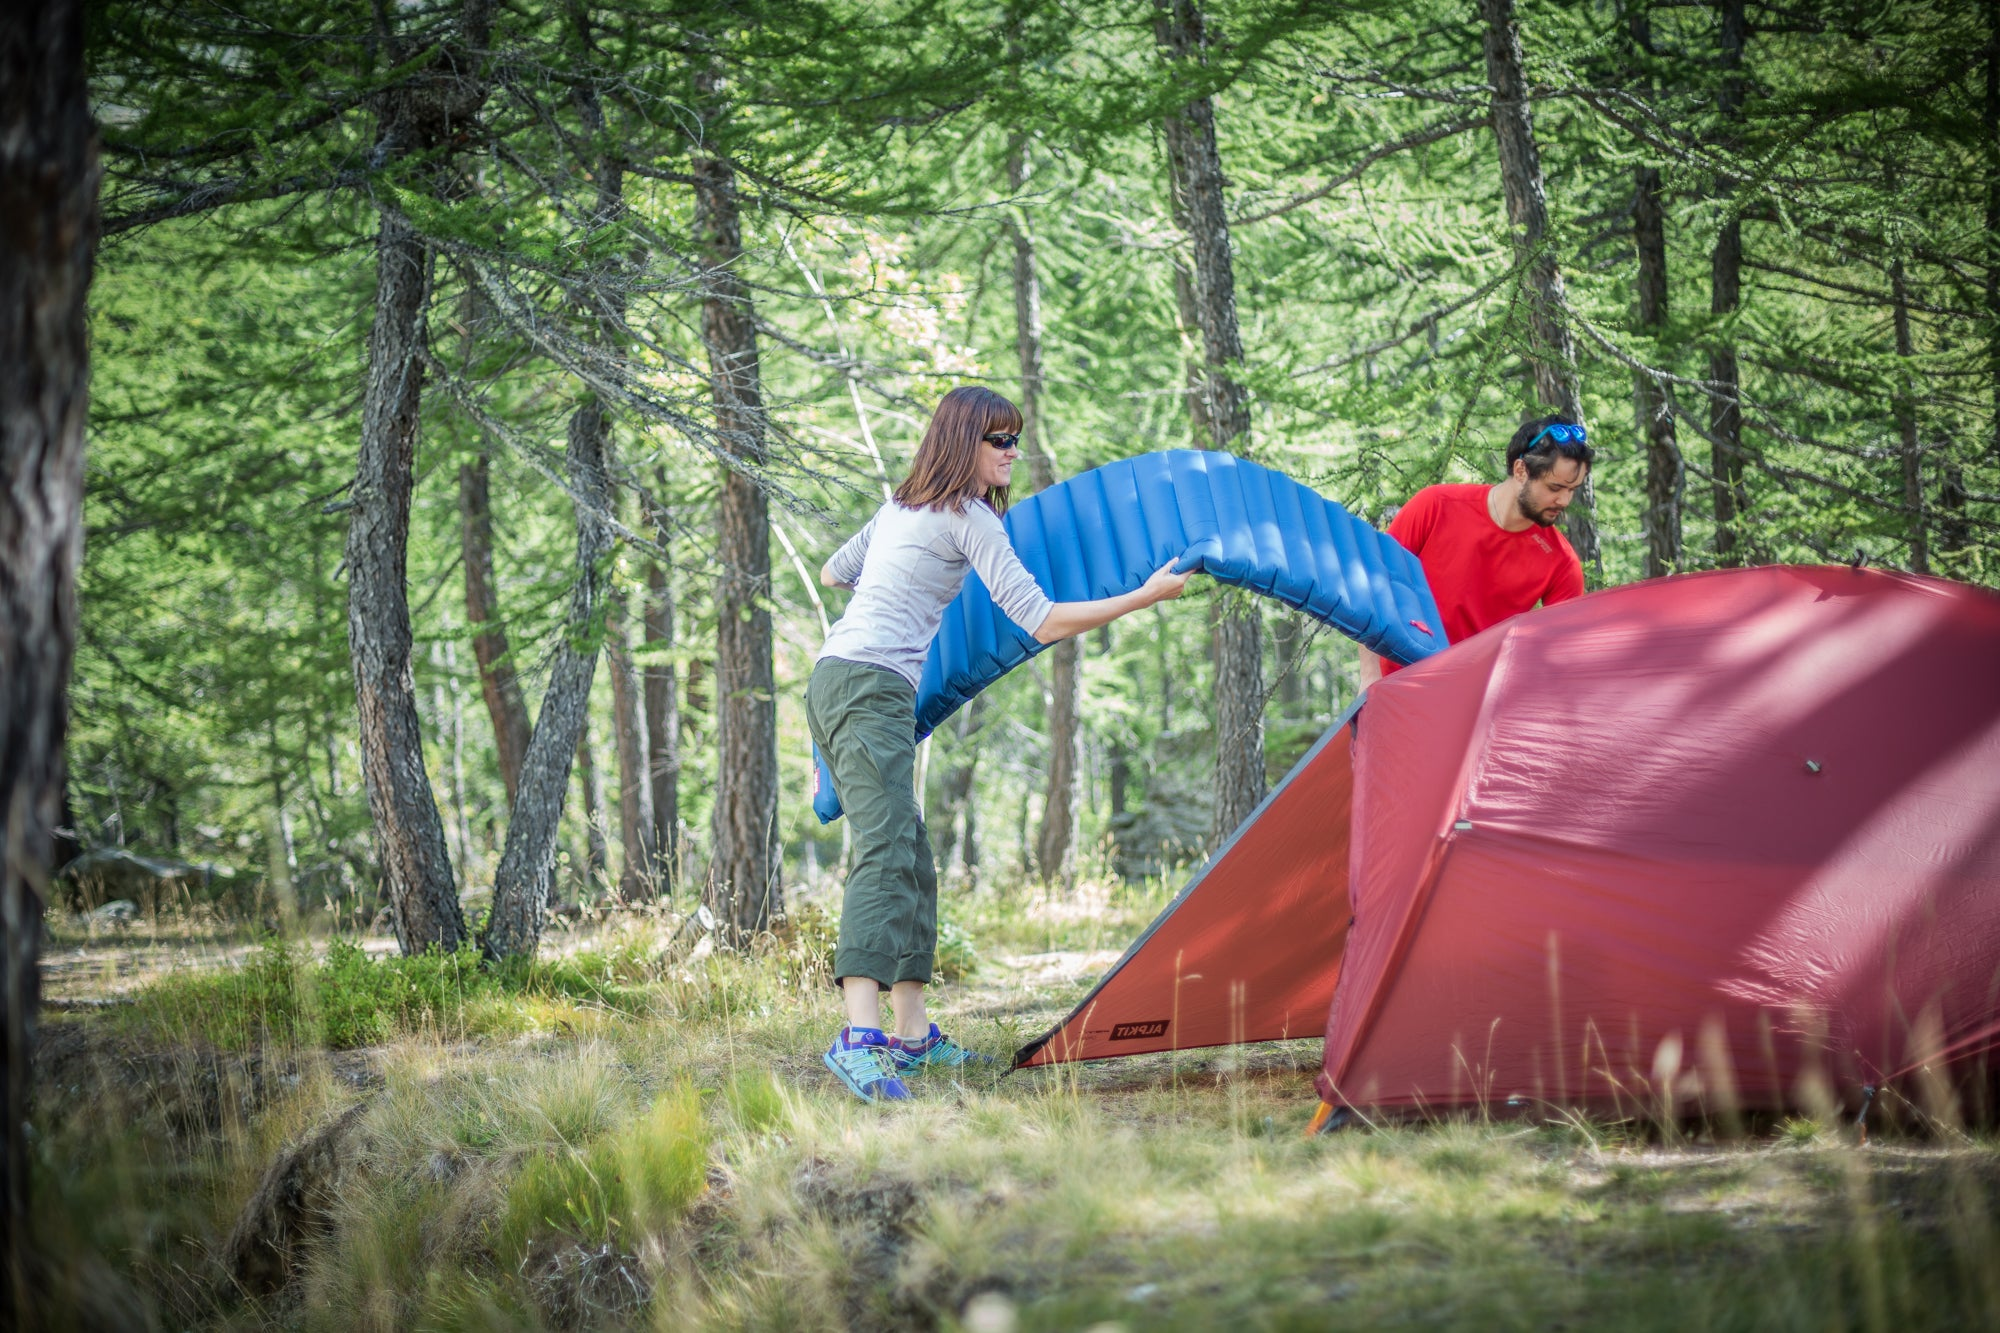 Trying to get a Dumo inflatable sleeping mat inside a tent in the woods near Chamonix